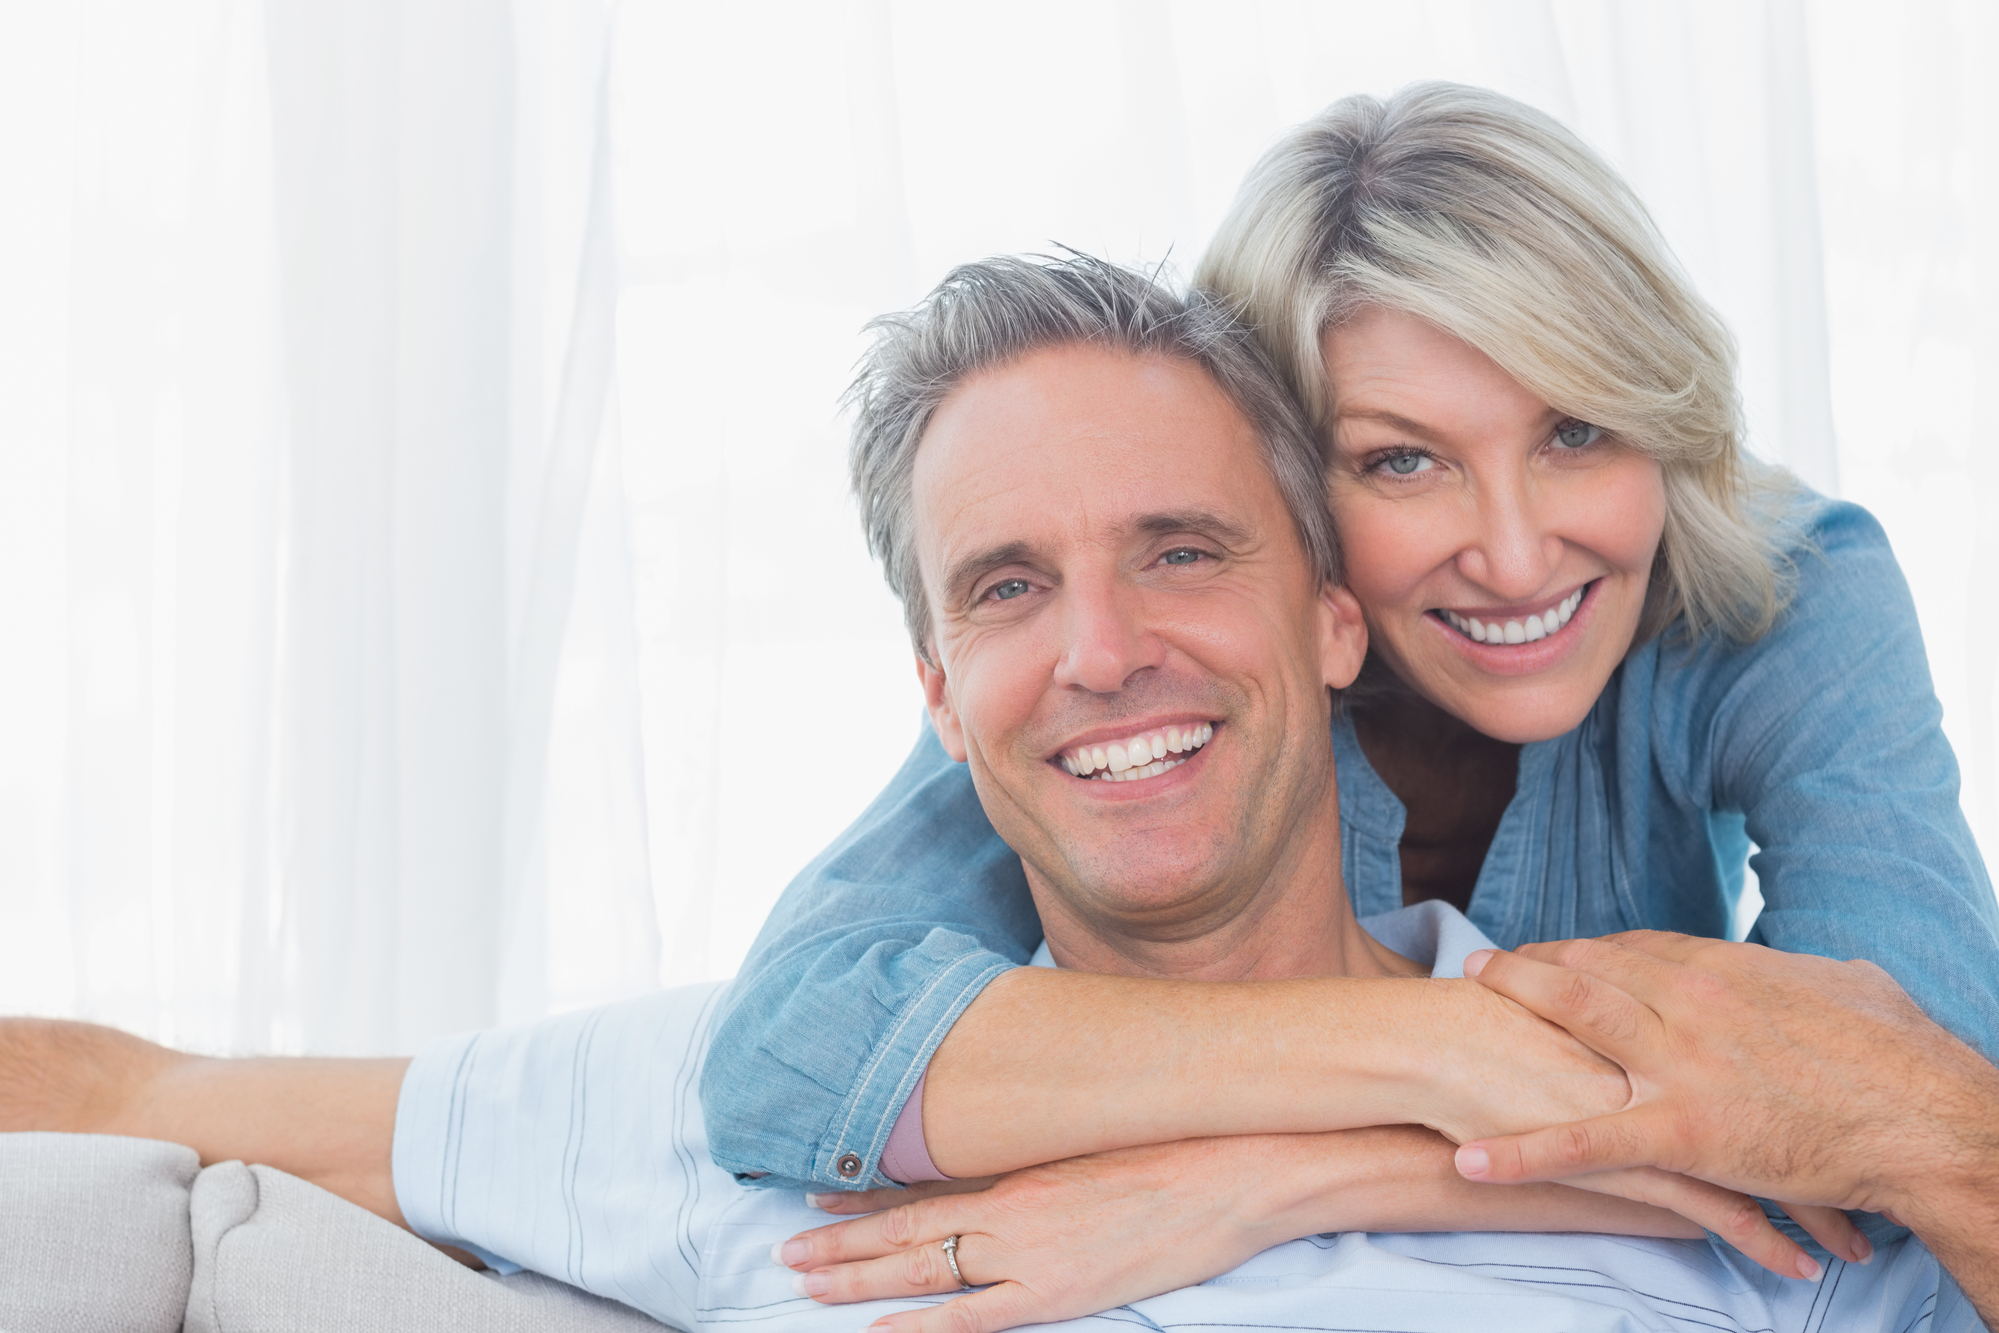 what are the benefits of getting dental implants in west palm beach fl